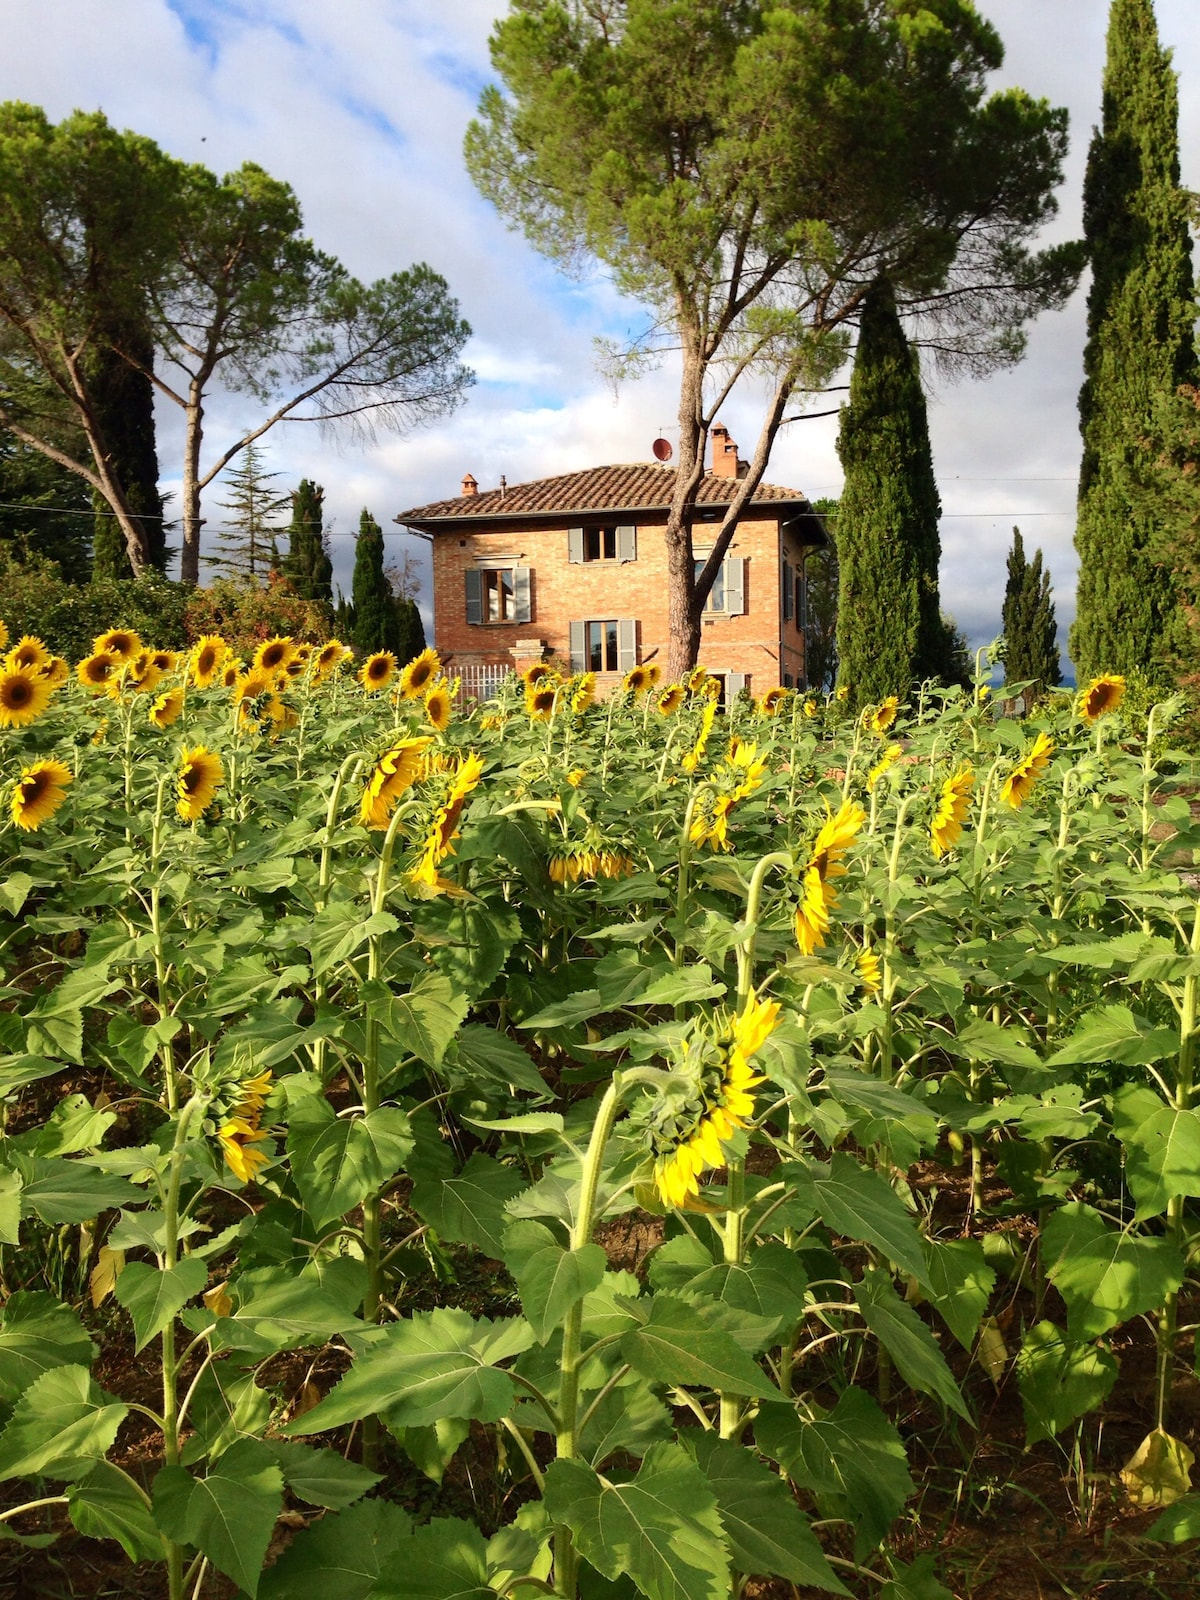 Villa with sunflowers